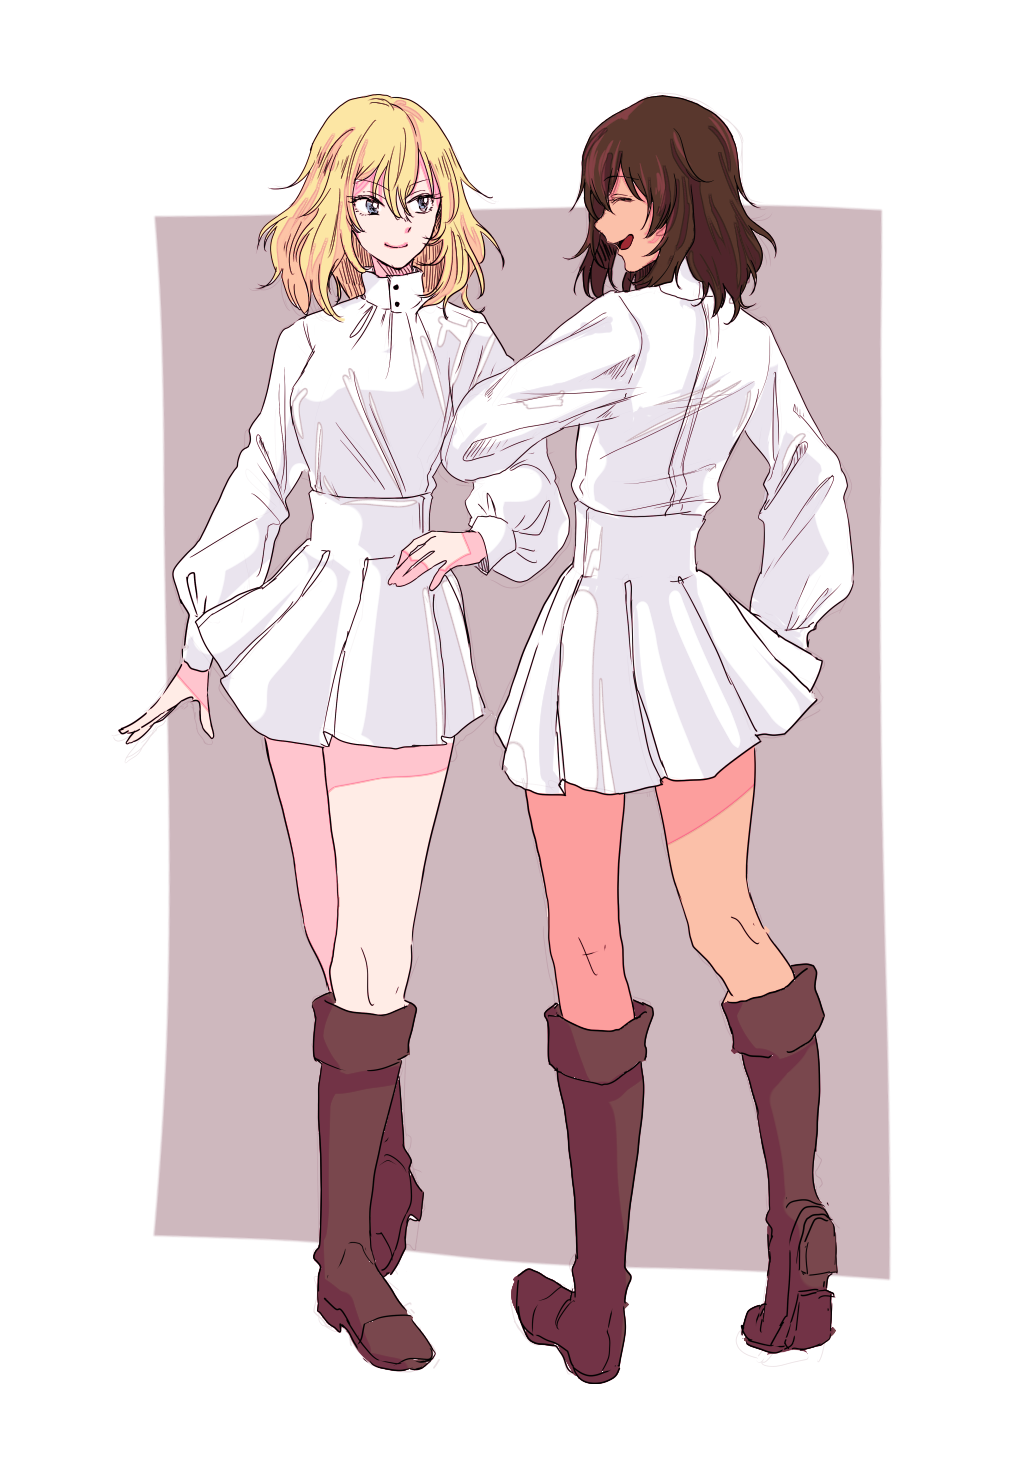 2girls andou_(girls_und_panzer) bc_freedom_military_uniform black_footwear black_hair blonde_hair blue_eyes boots closed_mouth dark_skin dress_shirt facing_another from_behind full_body girls_und_panzer grey_background high_collar highres kani_aruki_(bucket_crawl) knee_boots locked_arms looking_at_another medium_hair military military_uniform miniskirt multiple_girls open_mouth oshida_(girls_und_panzer) outside_border pleated_skirt shirt skirt smile standing uniform white_shirt white_skirt